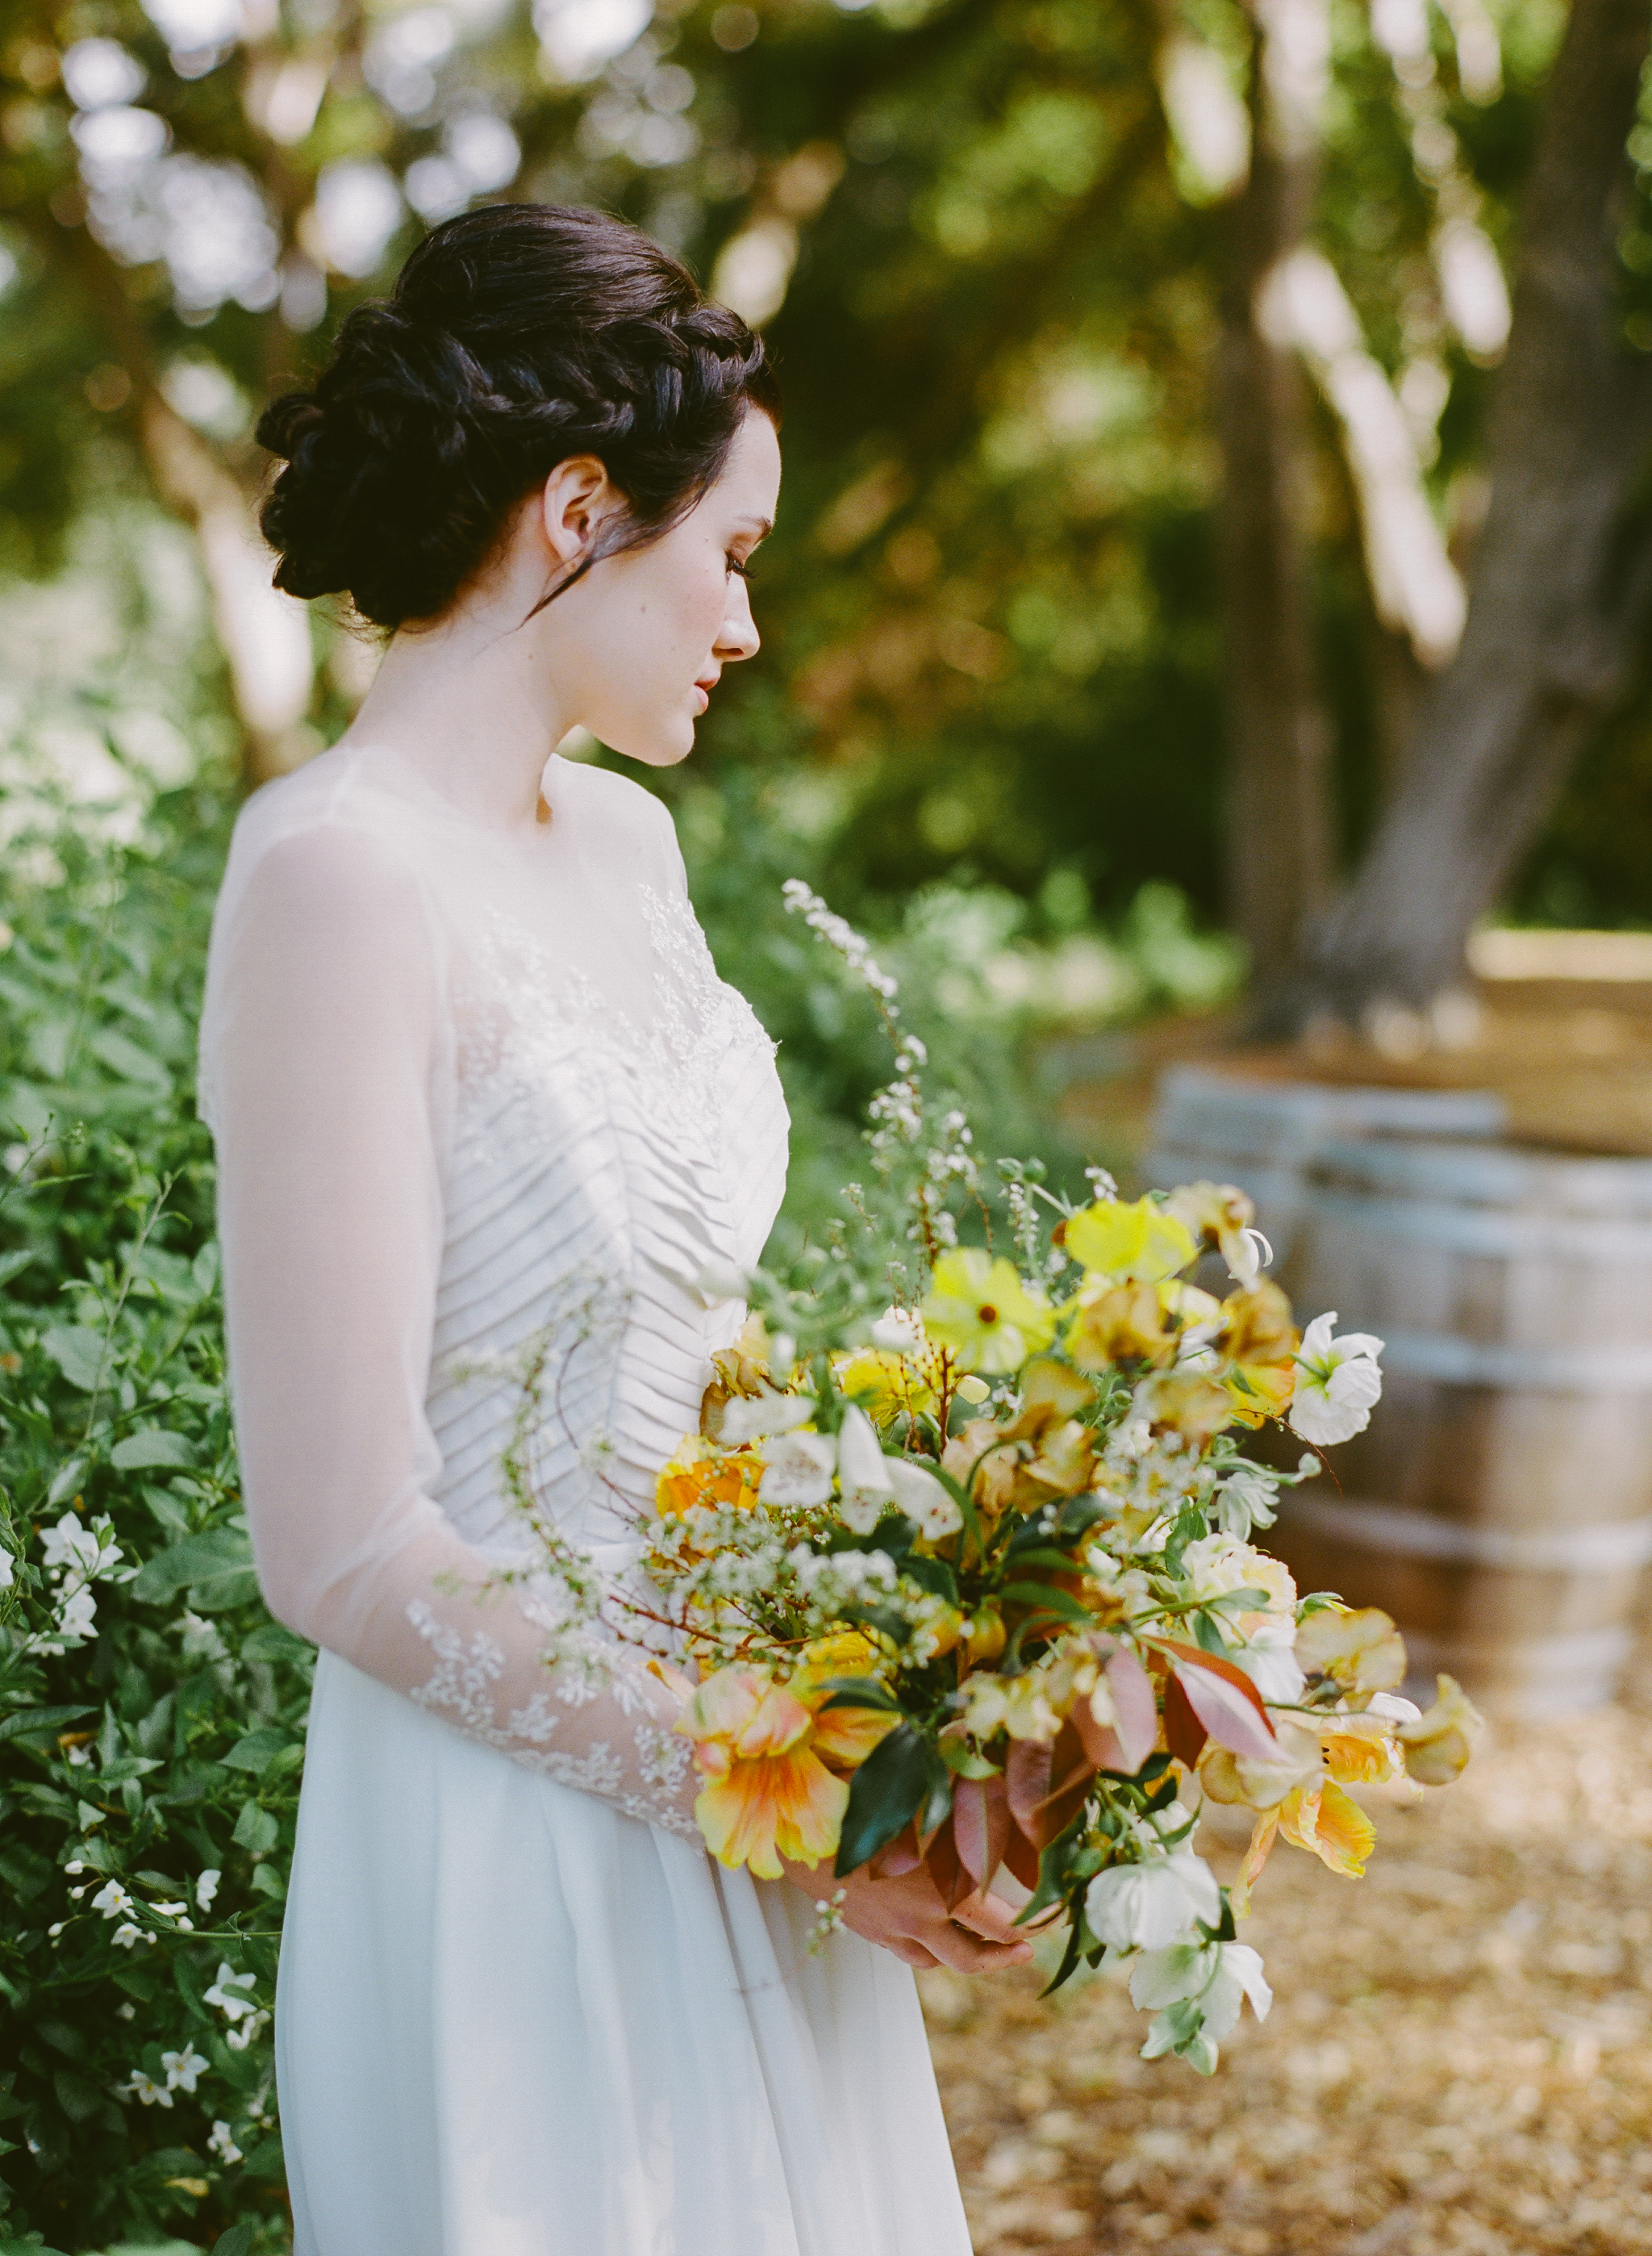 Best on location wedding Hairstylist. Bridal Hair in San Diego, Temecula, Fallbrook, Carlsbad and Orange County. Wedding Hairstyle and bridal hairstyles. The Posh Parlour is a full-service hair salon offering on location bridal hair styling and hair extensions. Stephanie is a top wedding hairstylist southern California. Wedding hair photos. Pictures of perfect bridal hairstyles. Couture bridal hair. Bridal updos and curled wedding hair. Bridesmaids Hairstyles. Traveling and destination wedding hairstylist in North County San Diego, Oceanside, Carlsbad, Encinitas , Vista, Escondito, Del Mar, La Jolla, Laguna Beach and San Clemente. specializing in Boho, Glamorous, tousled, soft curls, updos, braided, hair extensions, beach waves, sexy, classic, messy, voluminous, beautiful, stunning, pretty, long hair, braids, gorgeous hairstyles for brides and bridal party. Styling for rustic, glam, luxe, modern, shabby chic, vintage, and bohemian events.